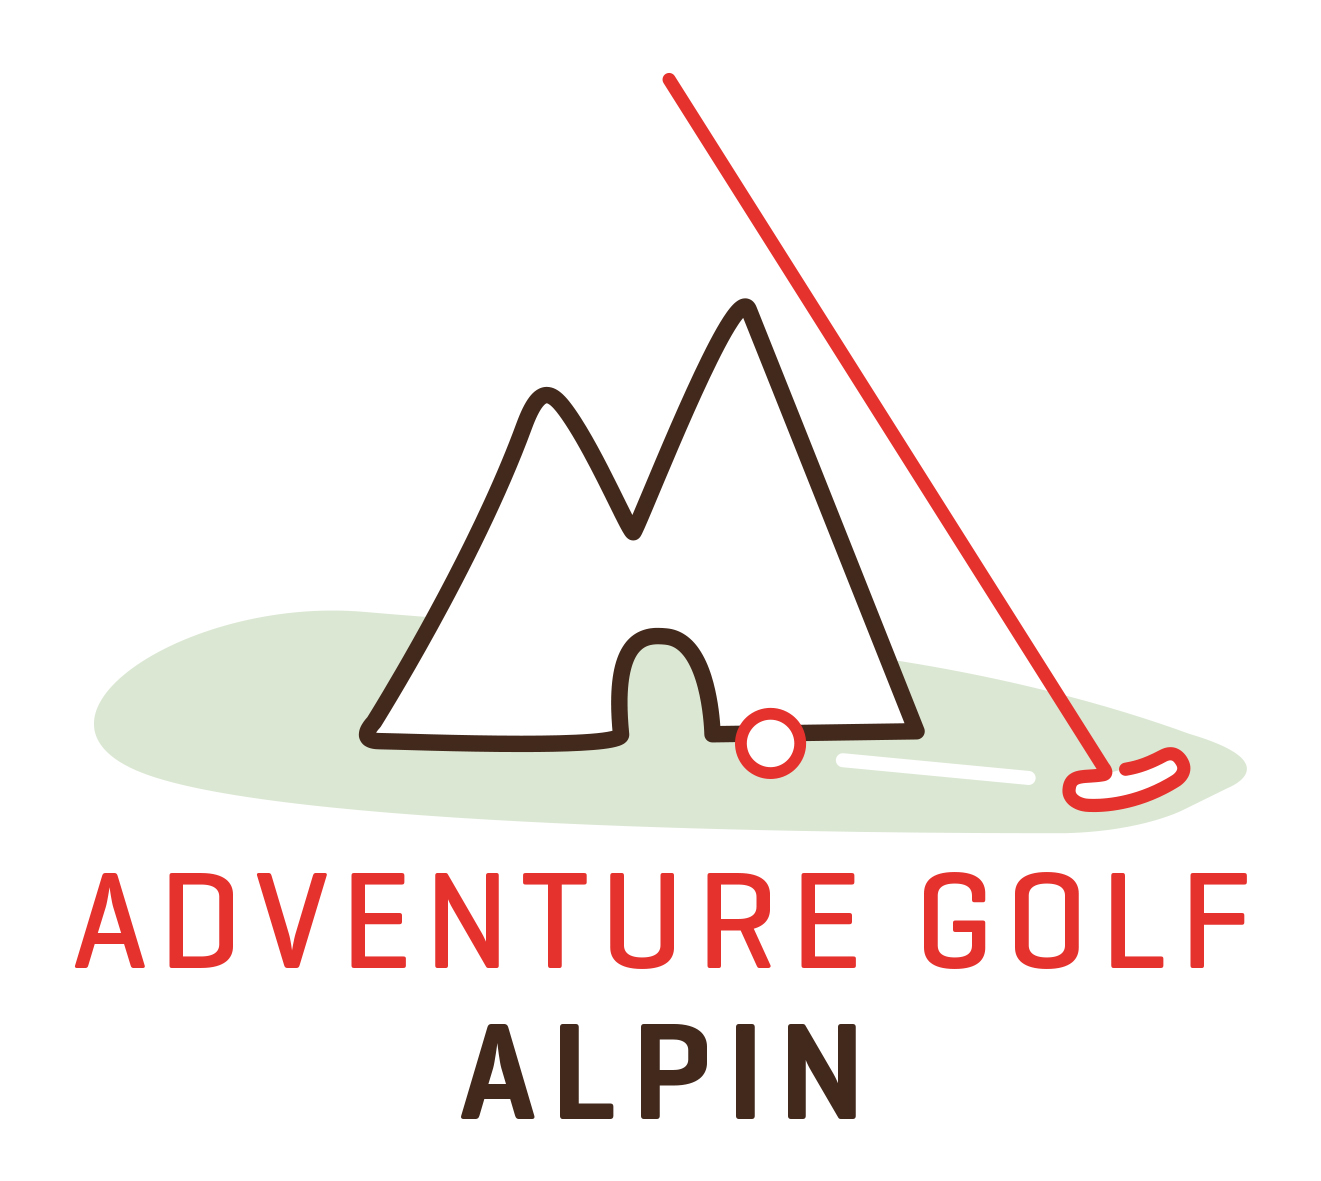 referenzen adventure golf alpin umgesetzte projekte. Black Bedroom Furniture Sets. Home Design Ideas